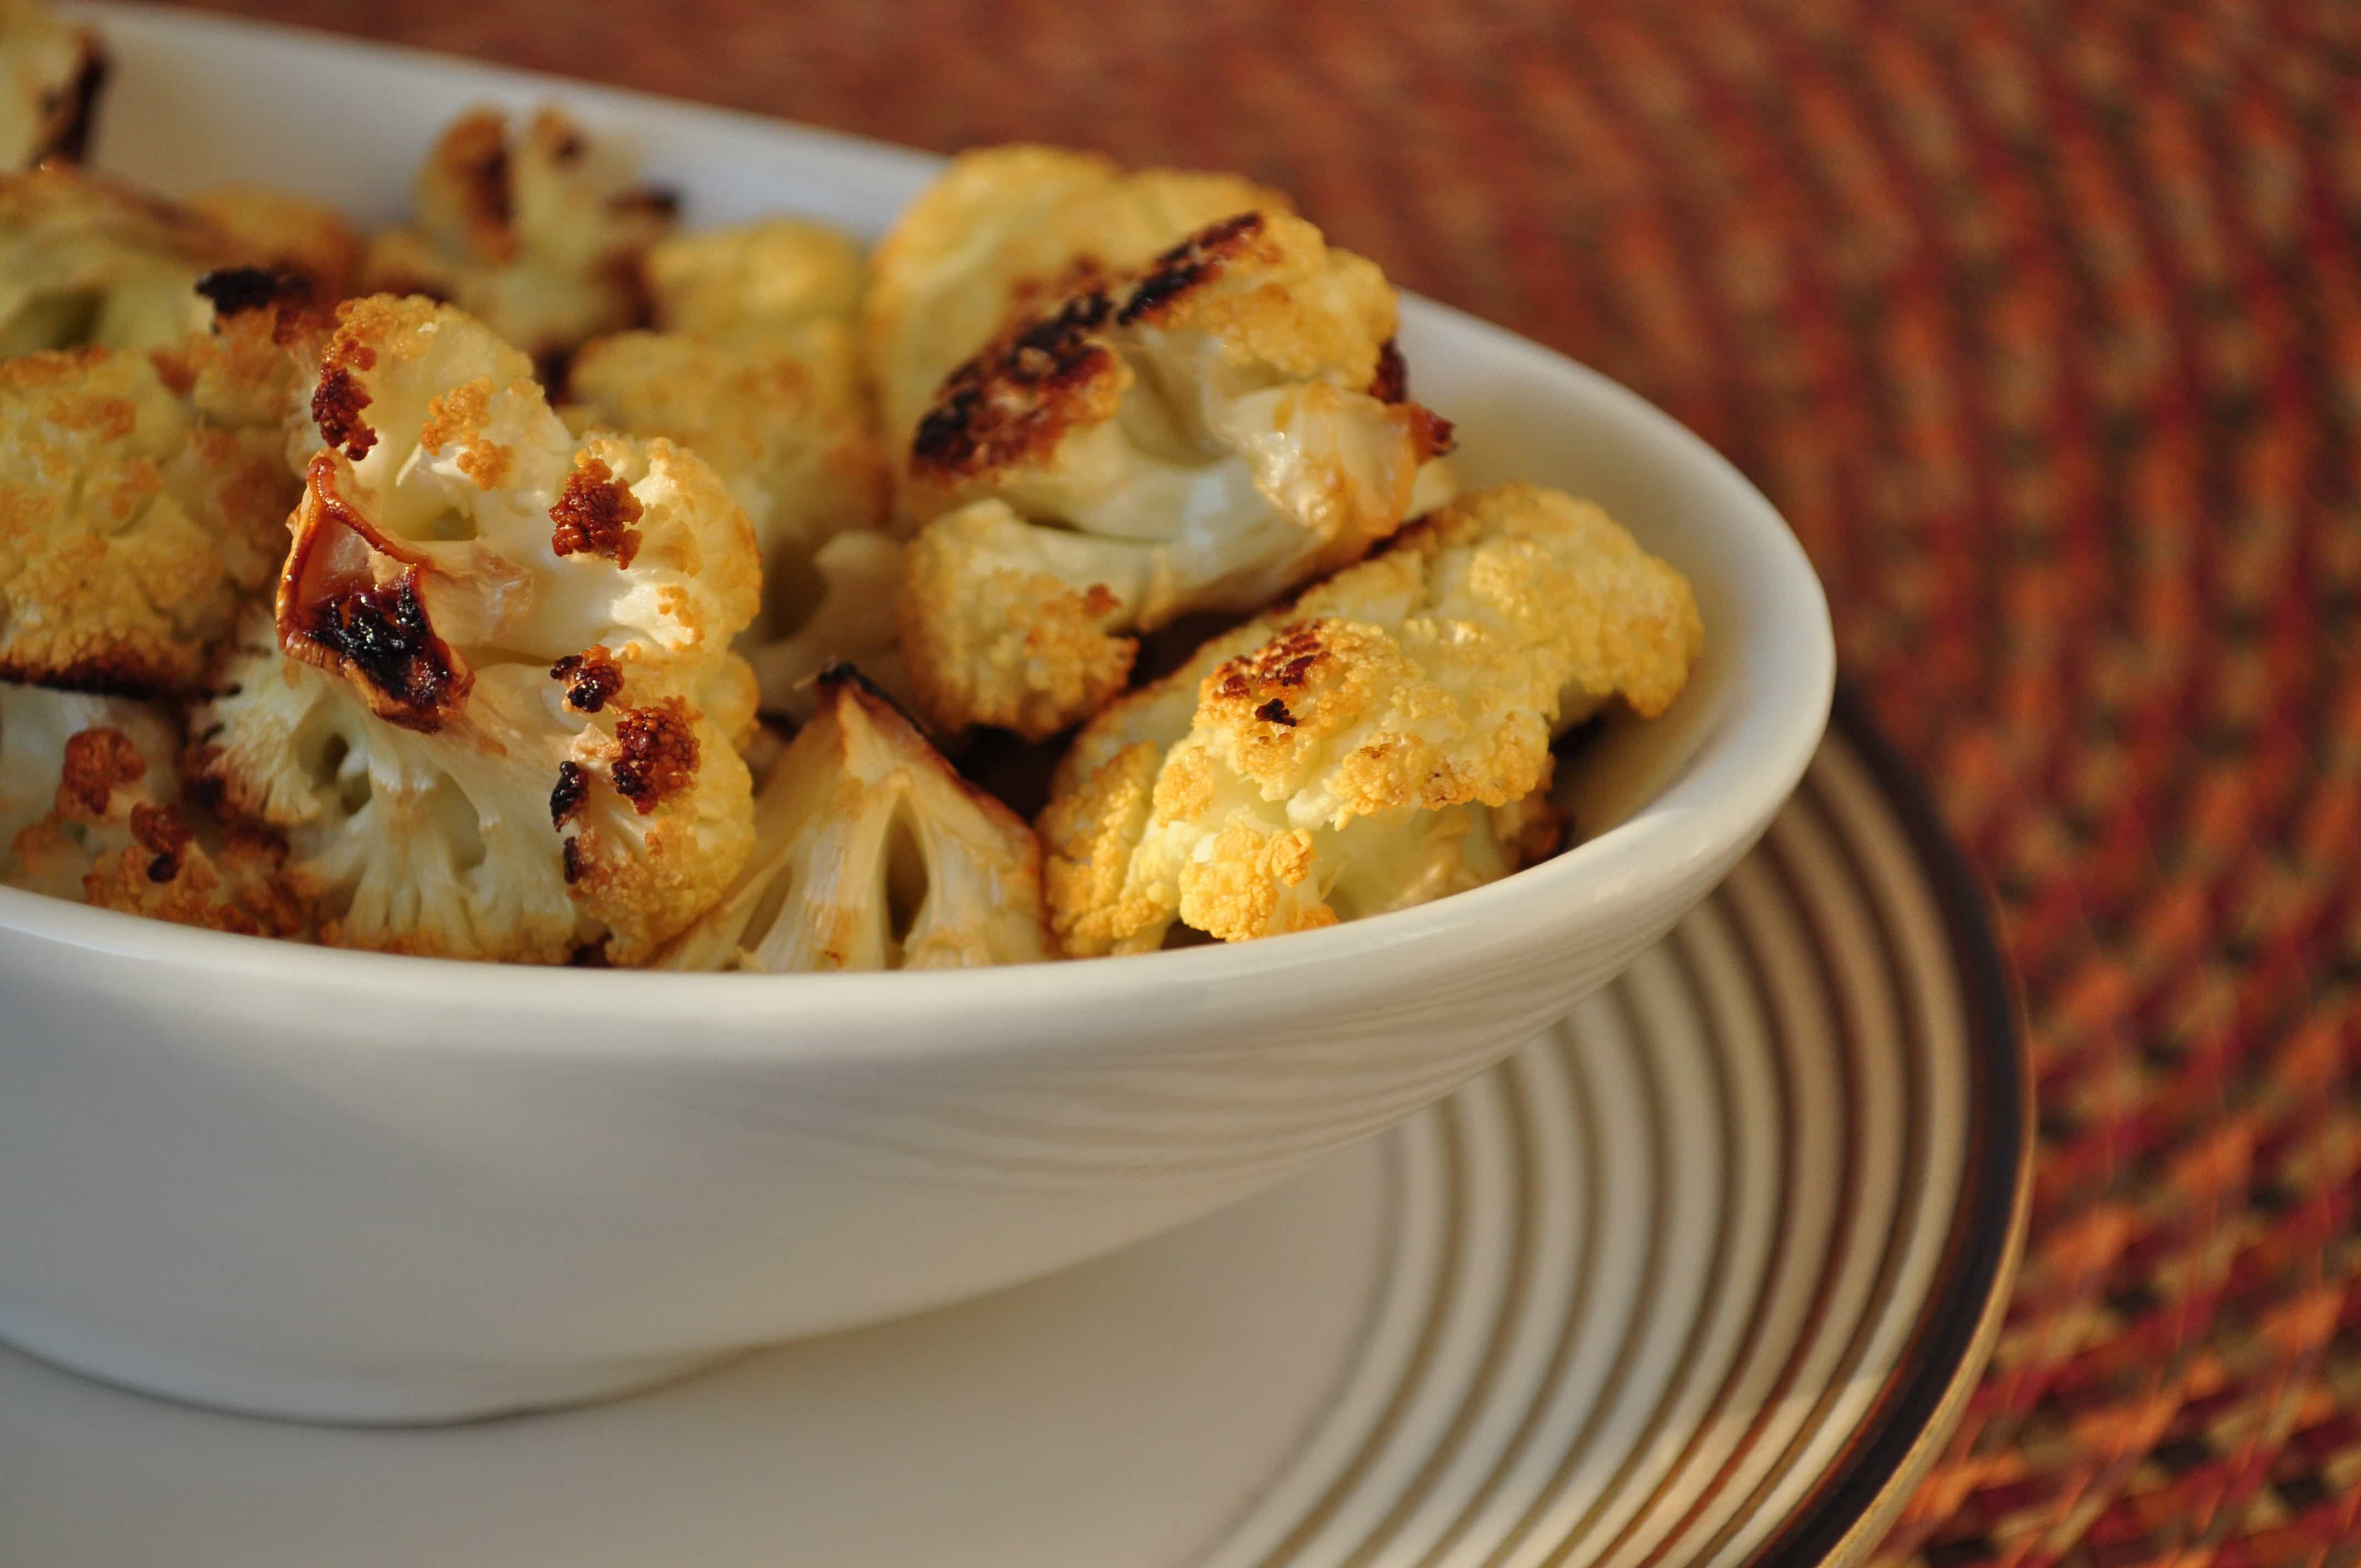 Cauliflower Popcorn aka Seriously Addictive Snack